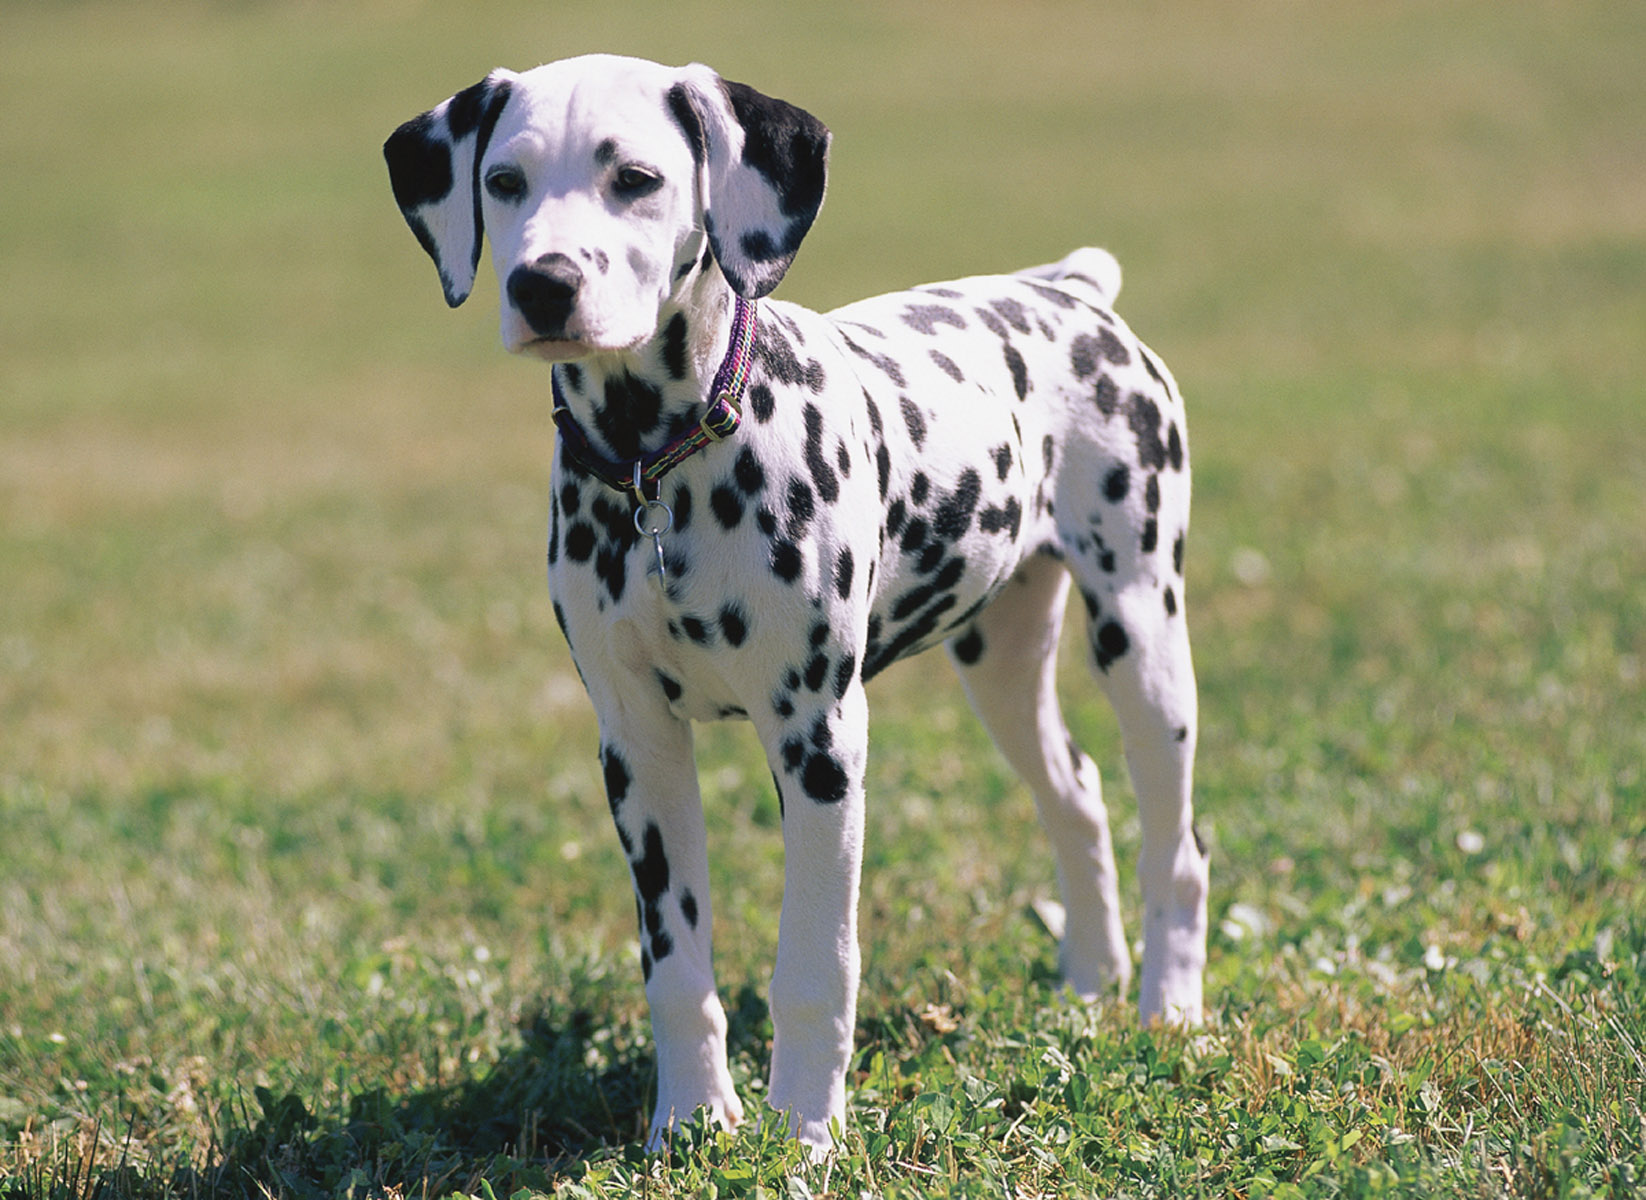 Dalmatian pictures  information  training  grooming and puppies